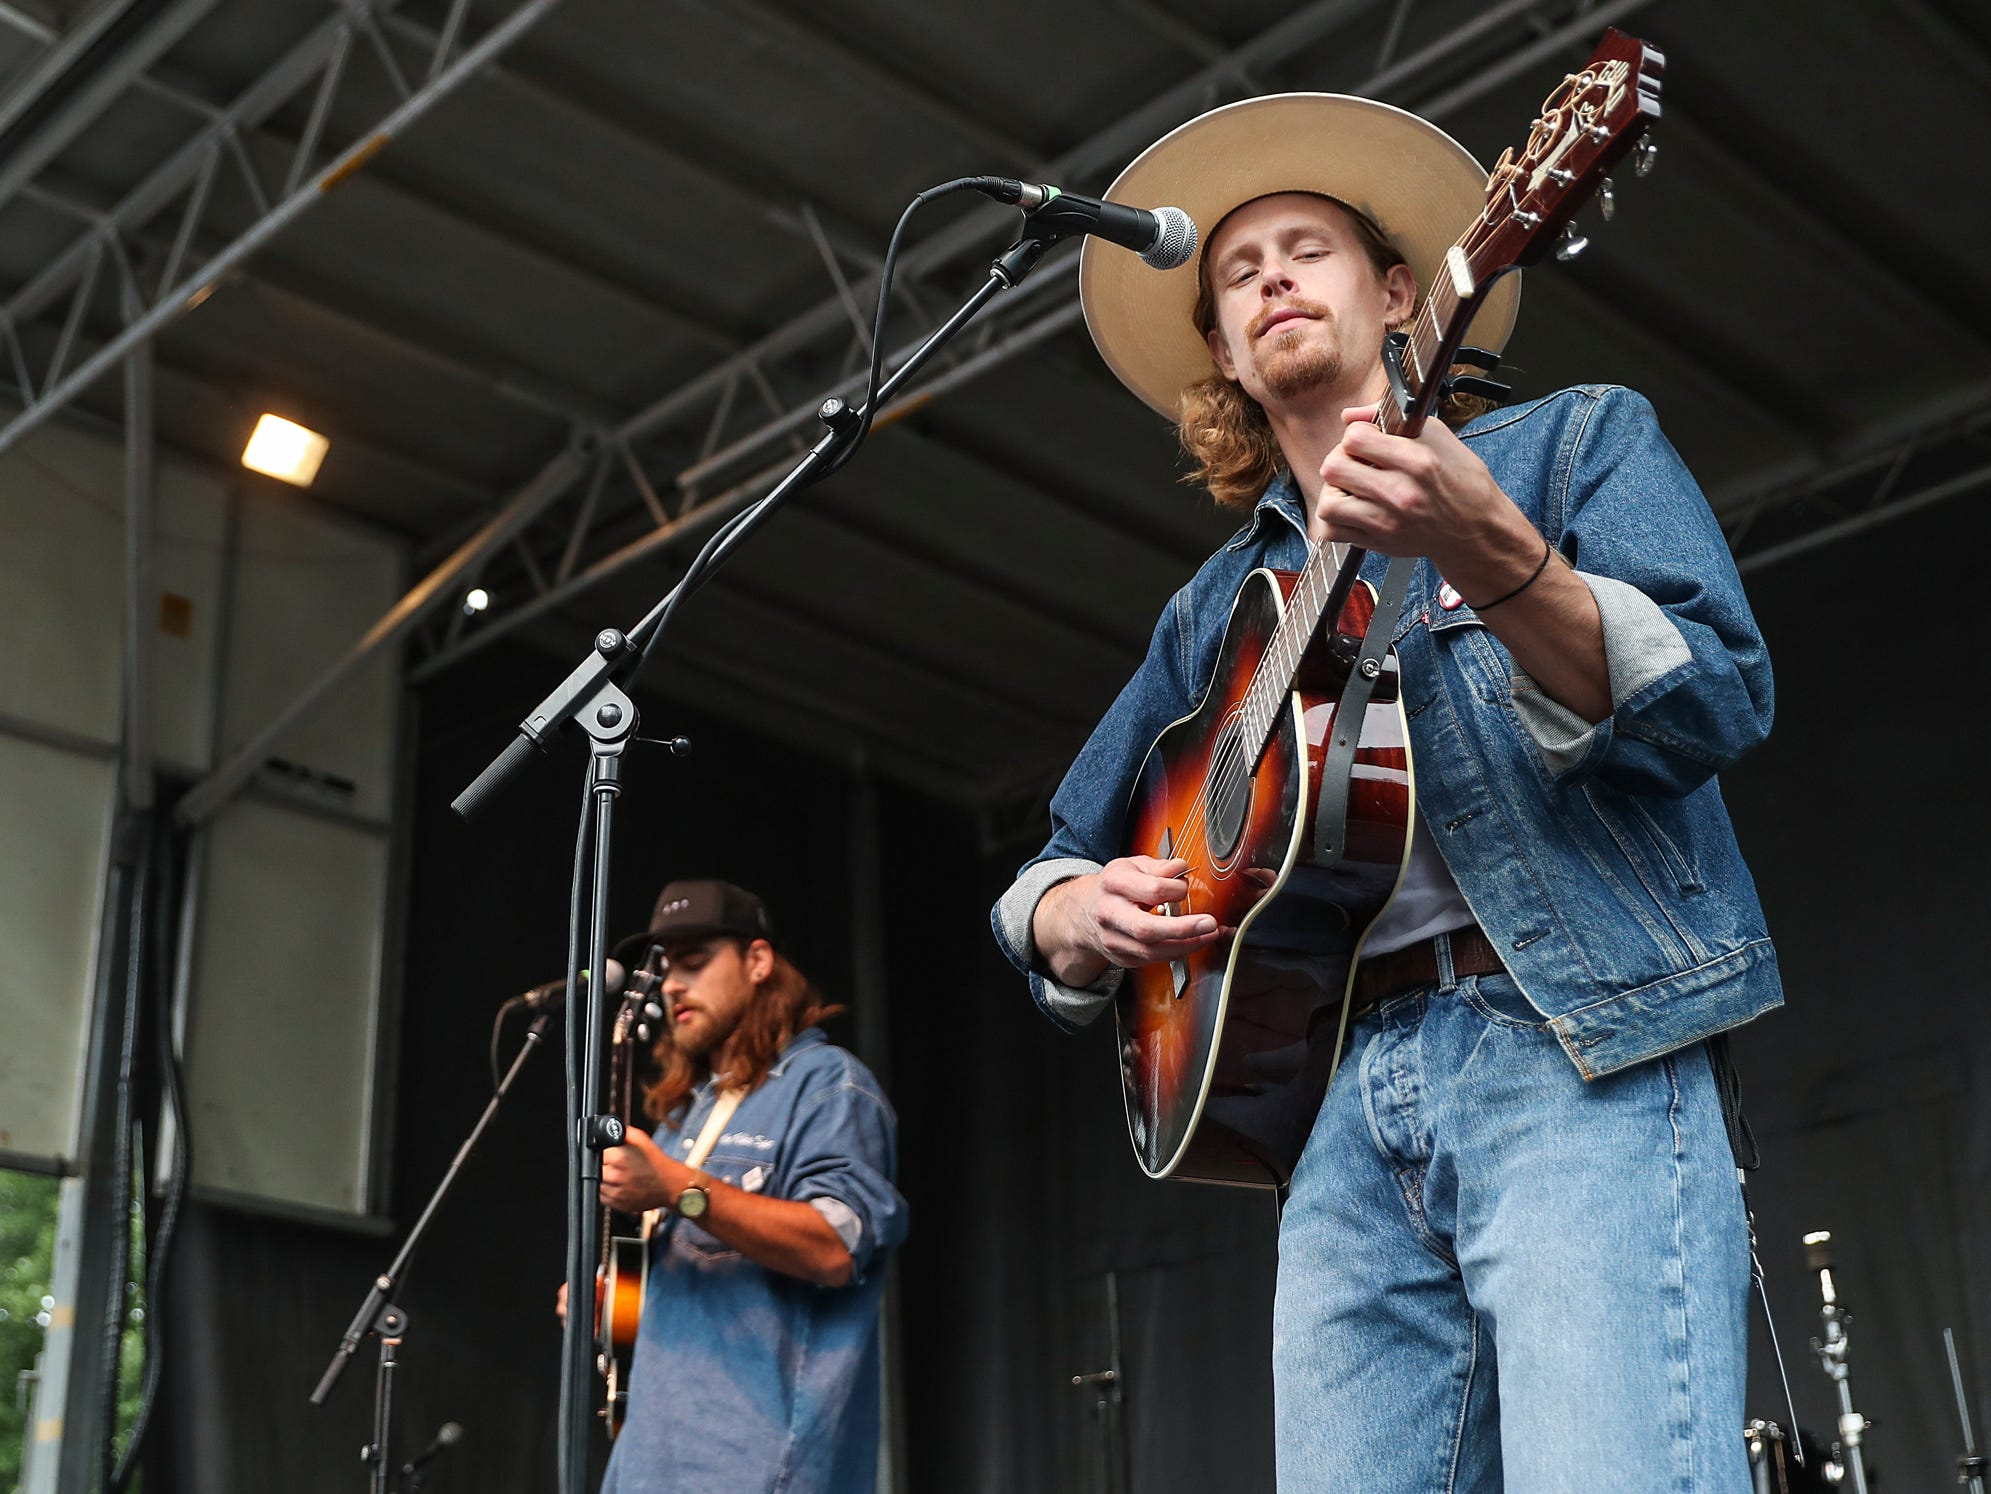 From left, Evan Westfall, Matt Vinson and Taylor Meier, of Ohio-based folk trio Caamp, perform at the inaugural Holler on the Hill music festival at Garfield Park in Indianapolis, Saturday, Sept. 22, 2018.